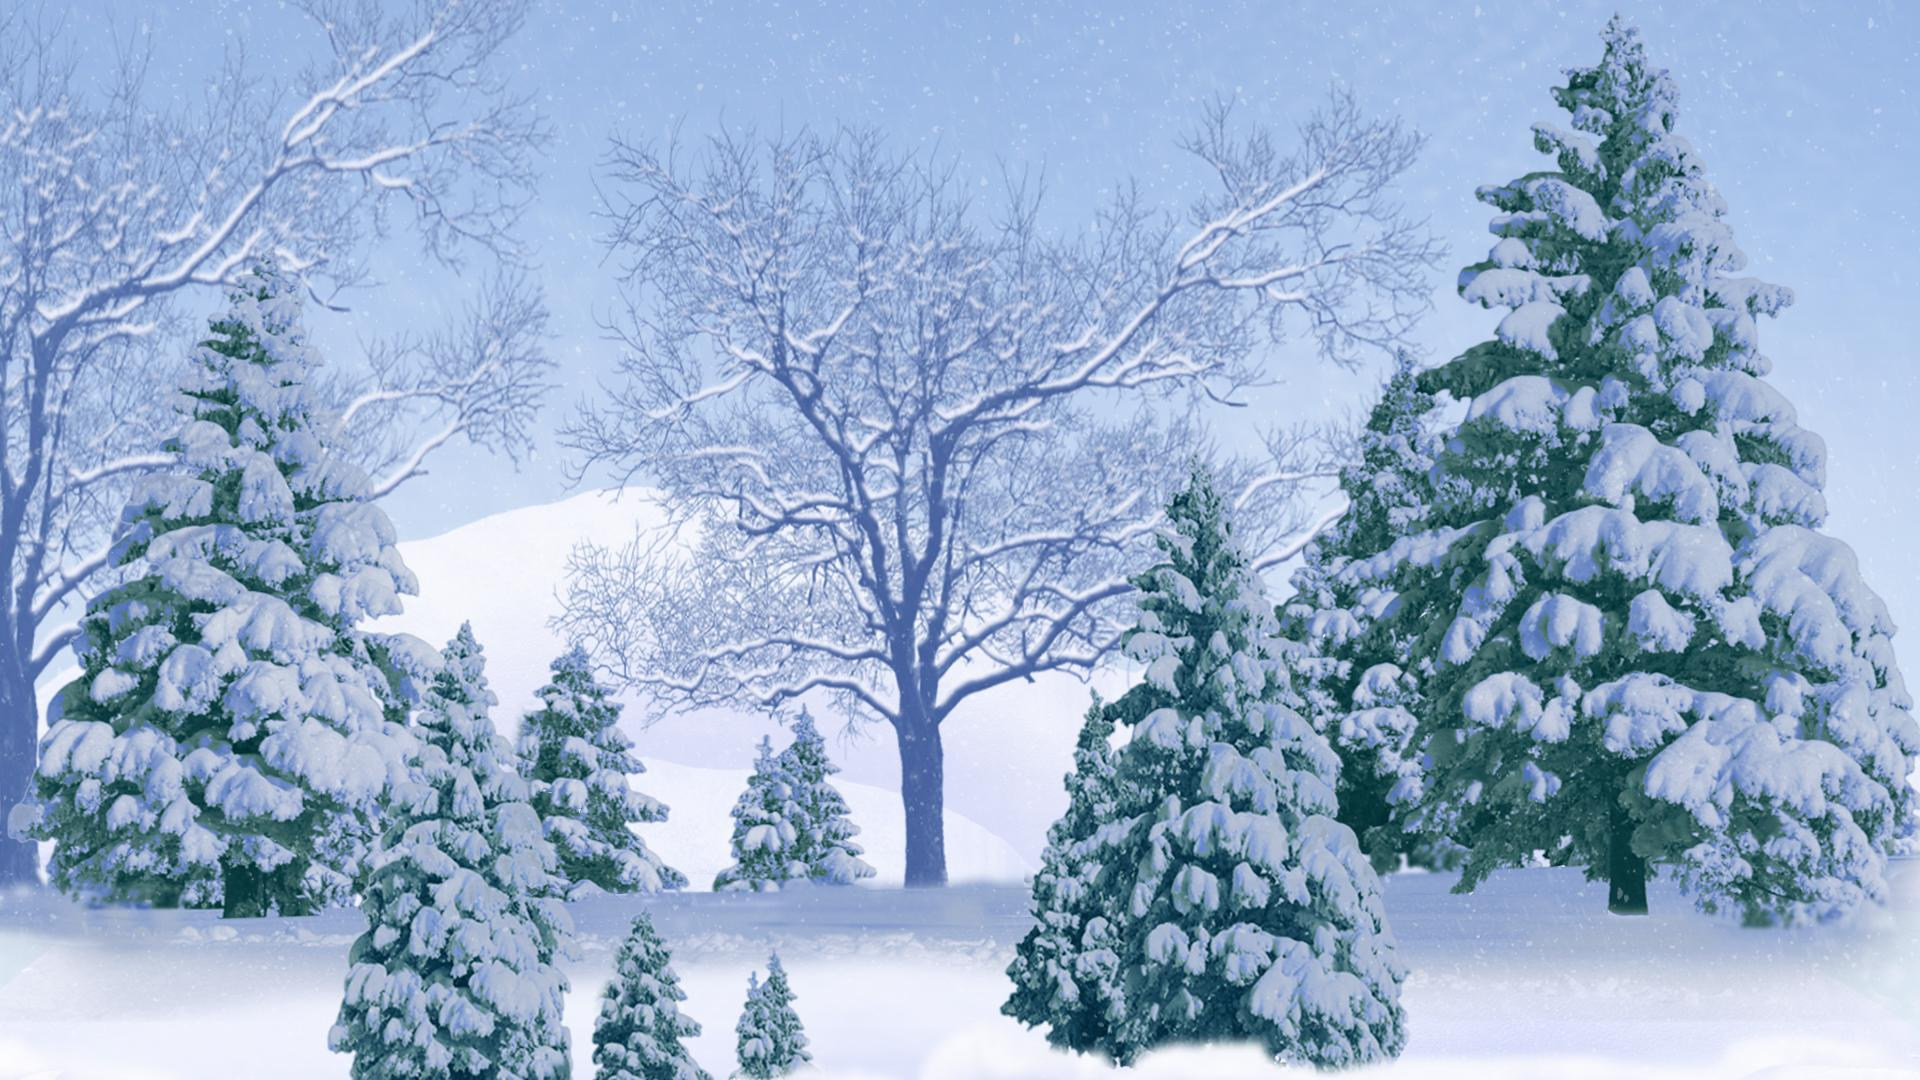 Snowy Trees Background